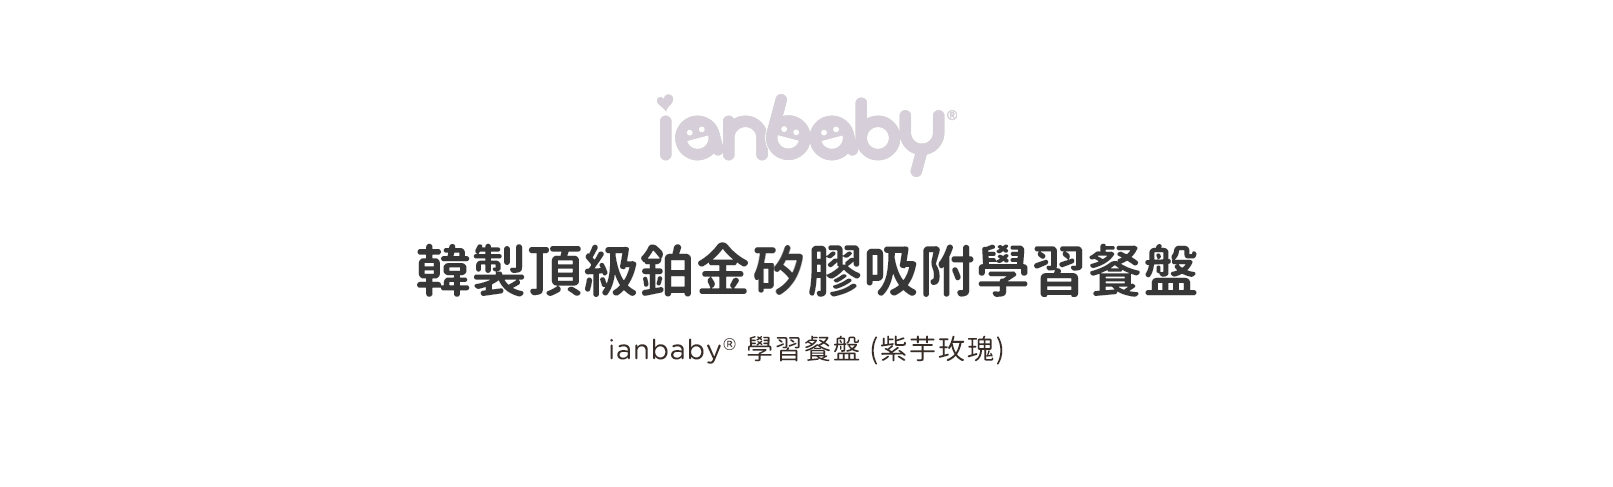 ianbaby-FT-V_01.png